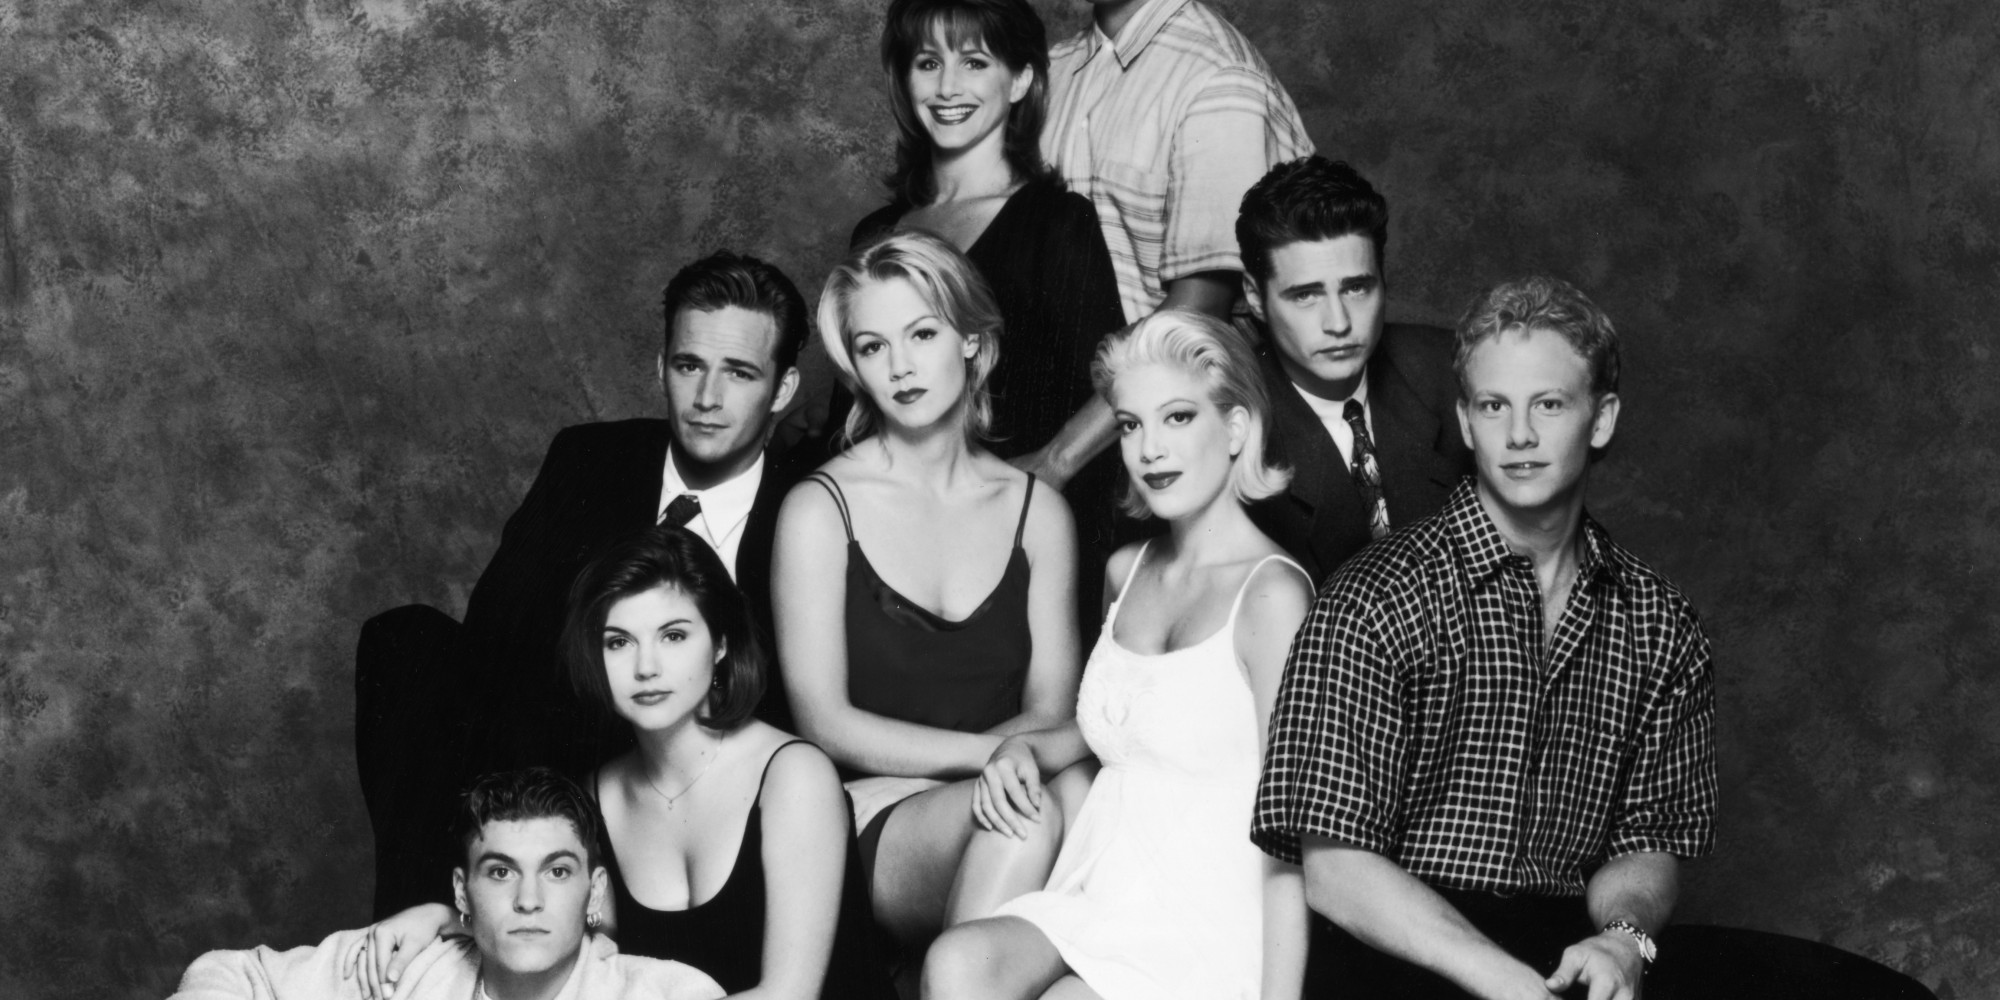 Ian Ziering On The 'Beverly Hills, 90210' Reunion That ... Quotes About Change